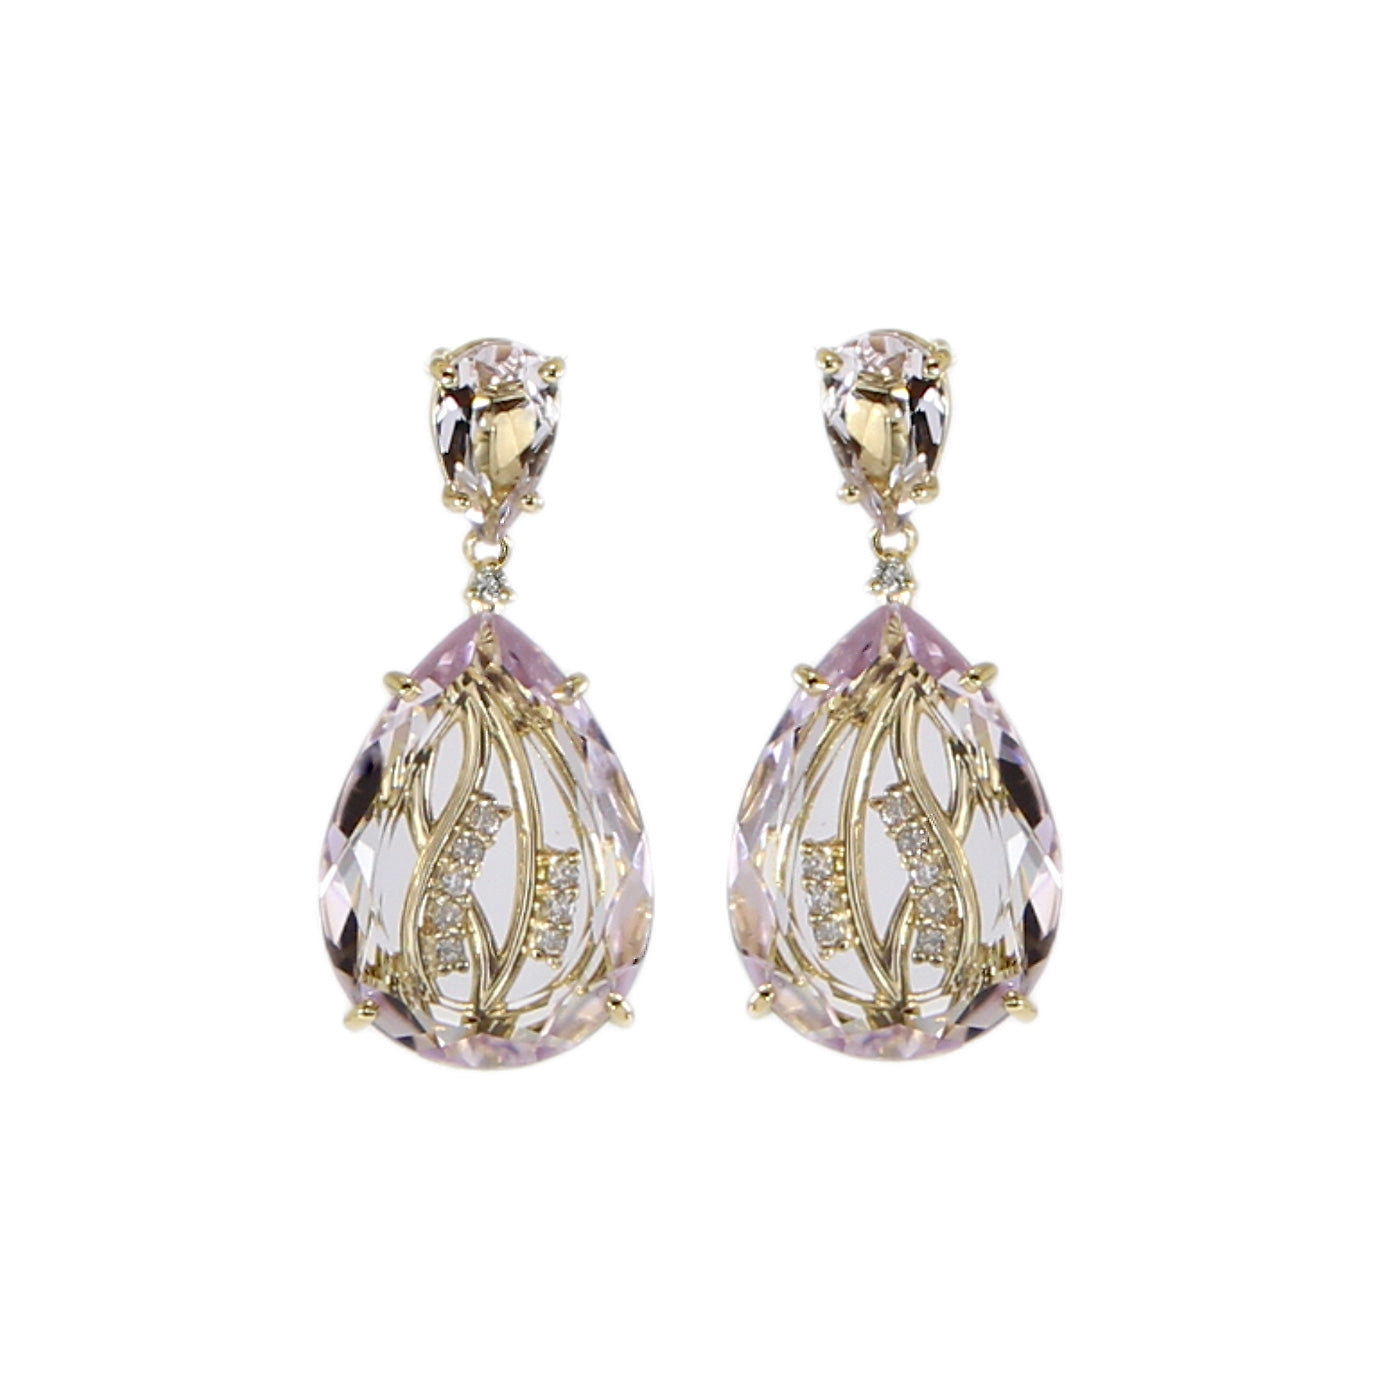 Pink Amethyst and White Topaz Drop Earrings, Sterling Silver and Vermeil